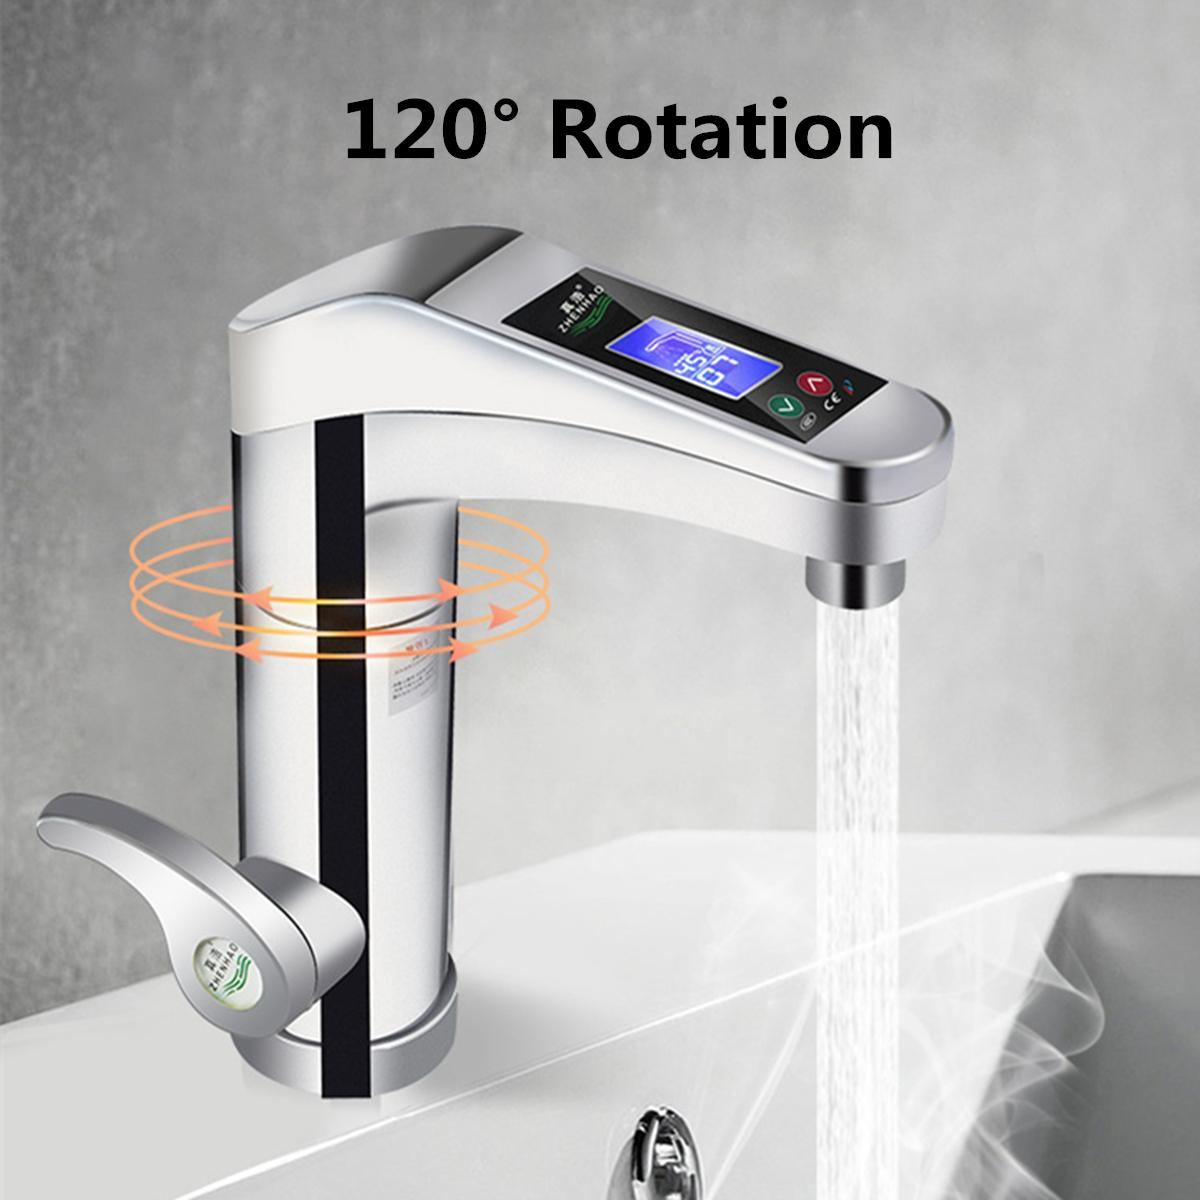 2019 LED Electric Faucet Tap Hot Water Heater Instant Hot Cold Water Faucet Home Bathroom Kitchen Heating Supplies 220V 2 Colors